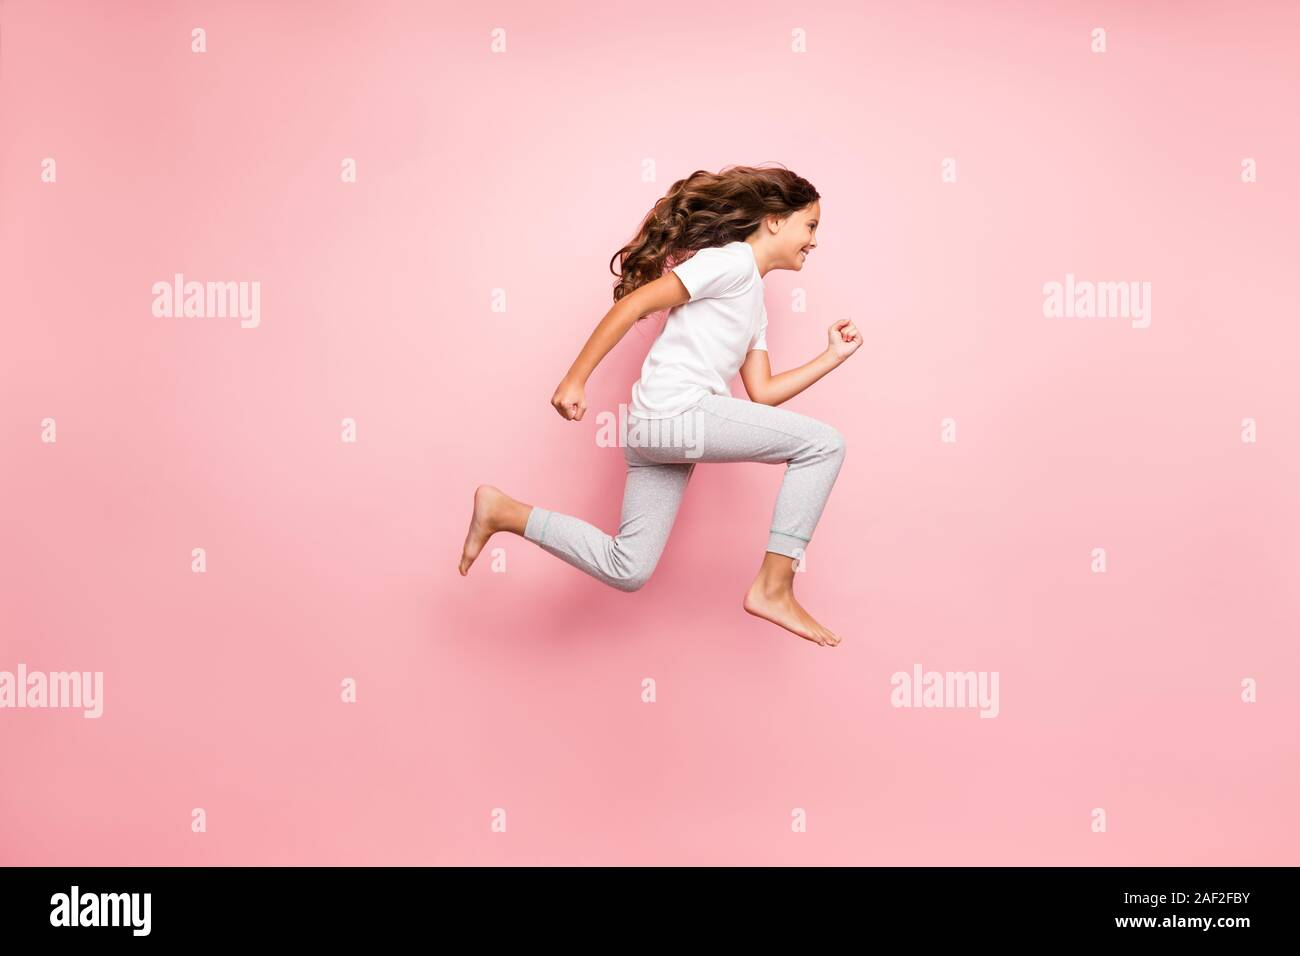 Full length body size side profile photo of cheerful barefoot positive running urgent hurrying preteen wearing t-shirt isolated over pastel color Stock Photo